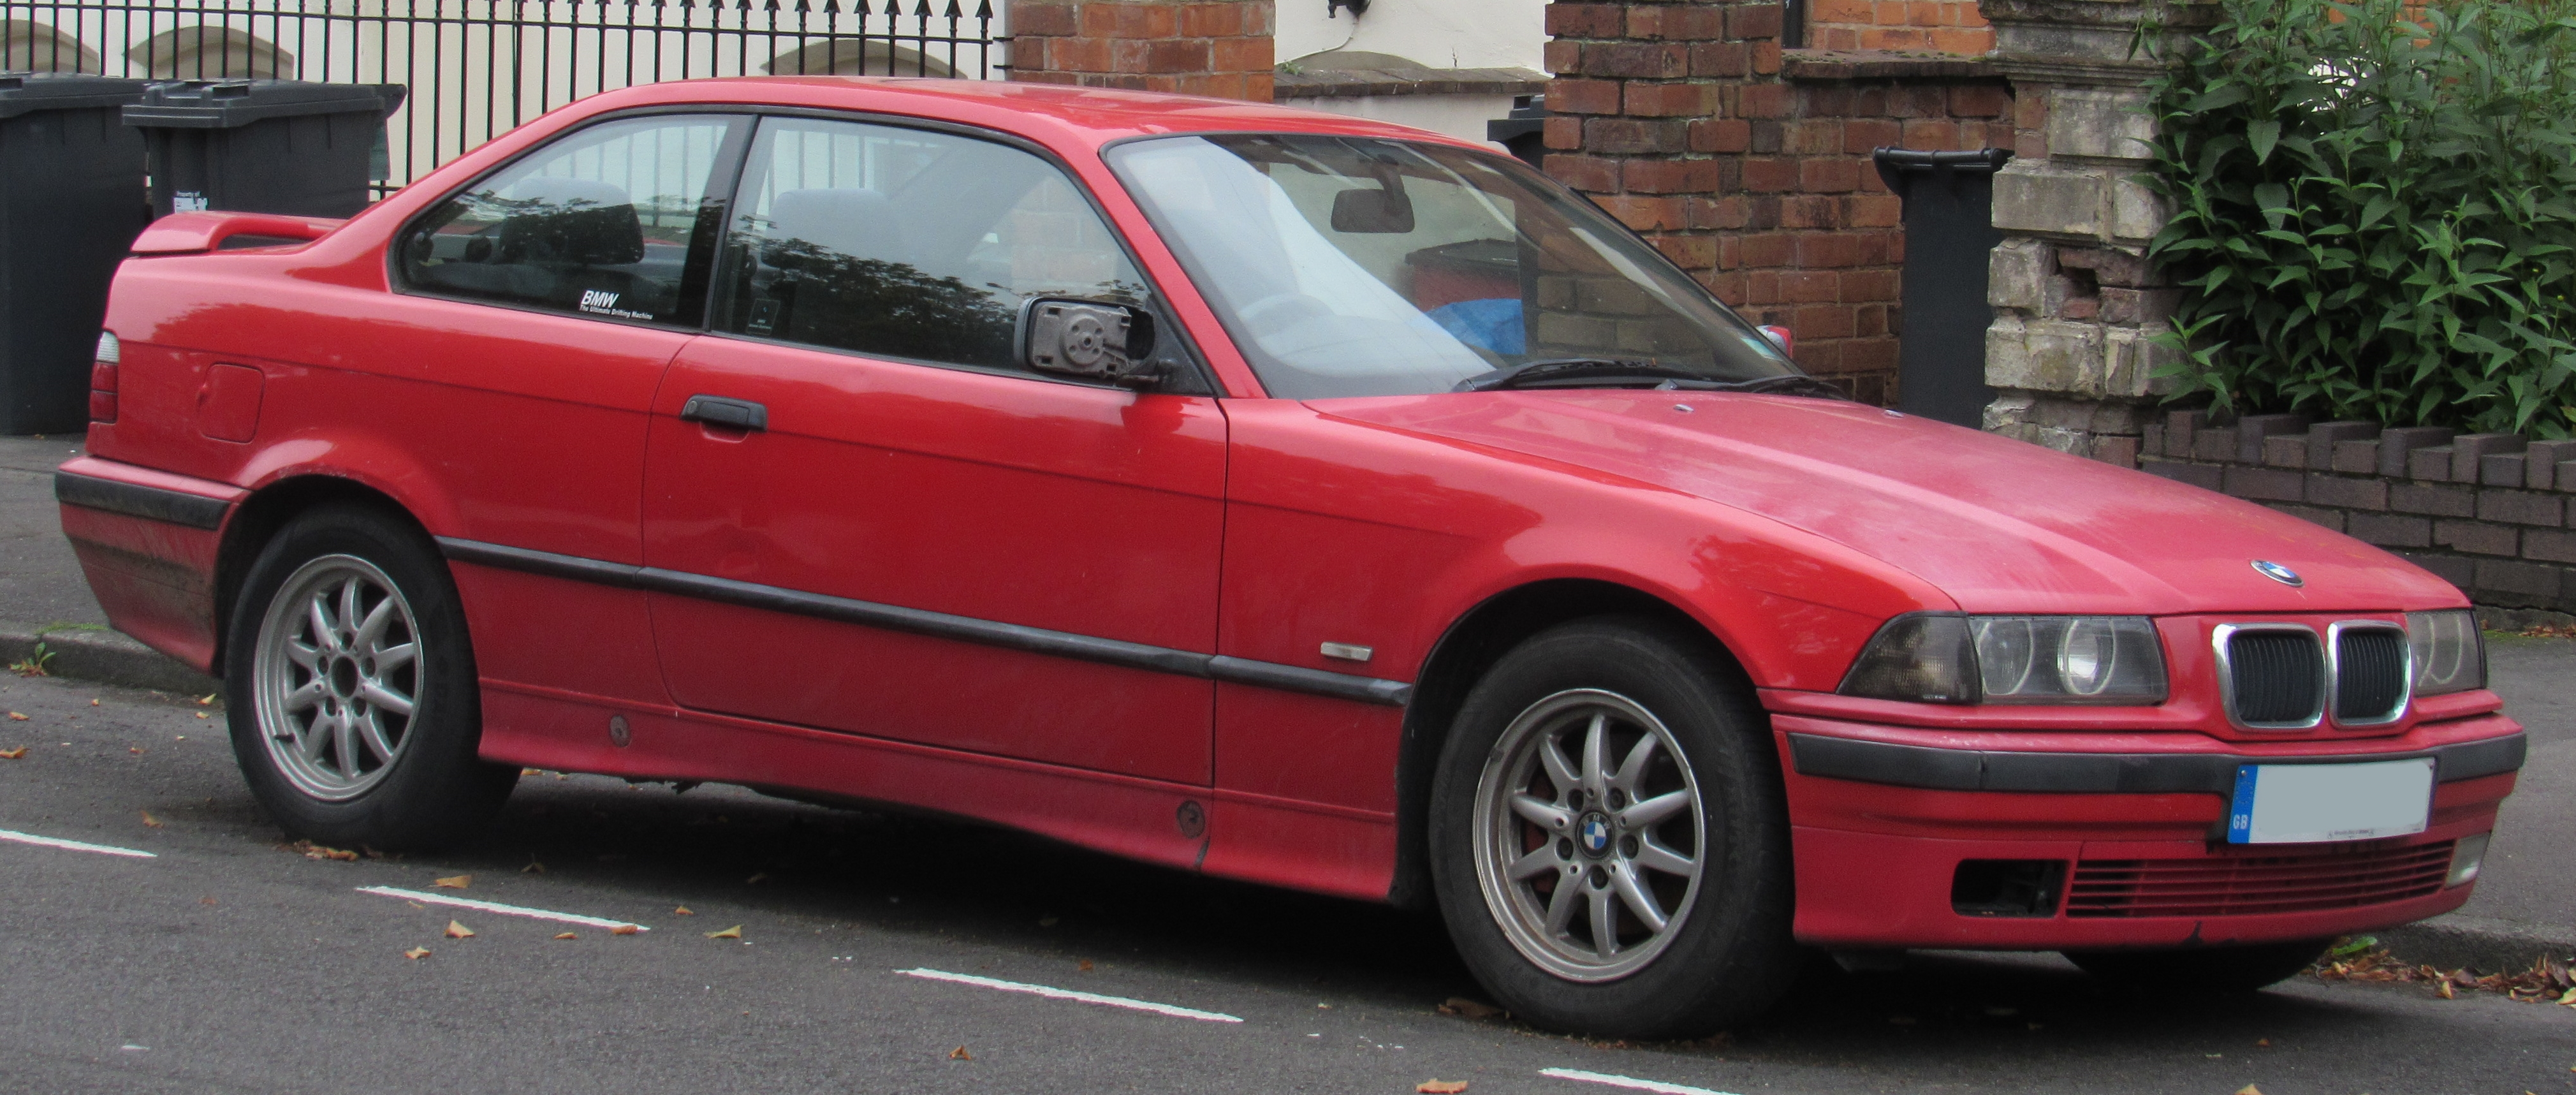 File 1997 bmw 318is coupe 1 9 front jpg